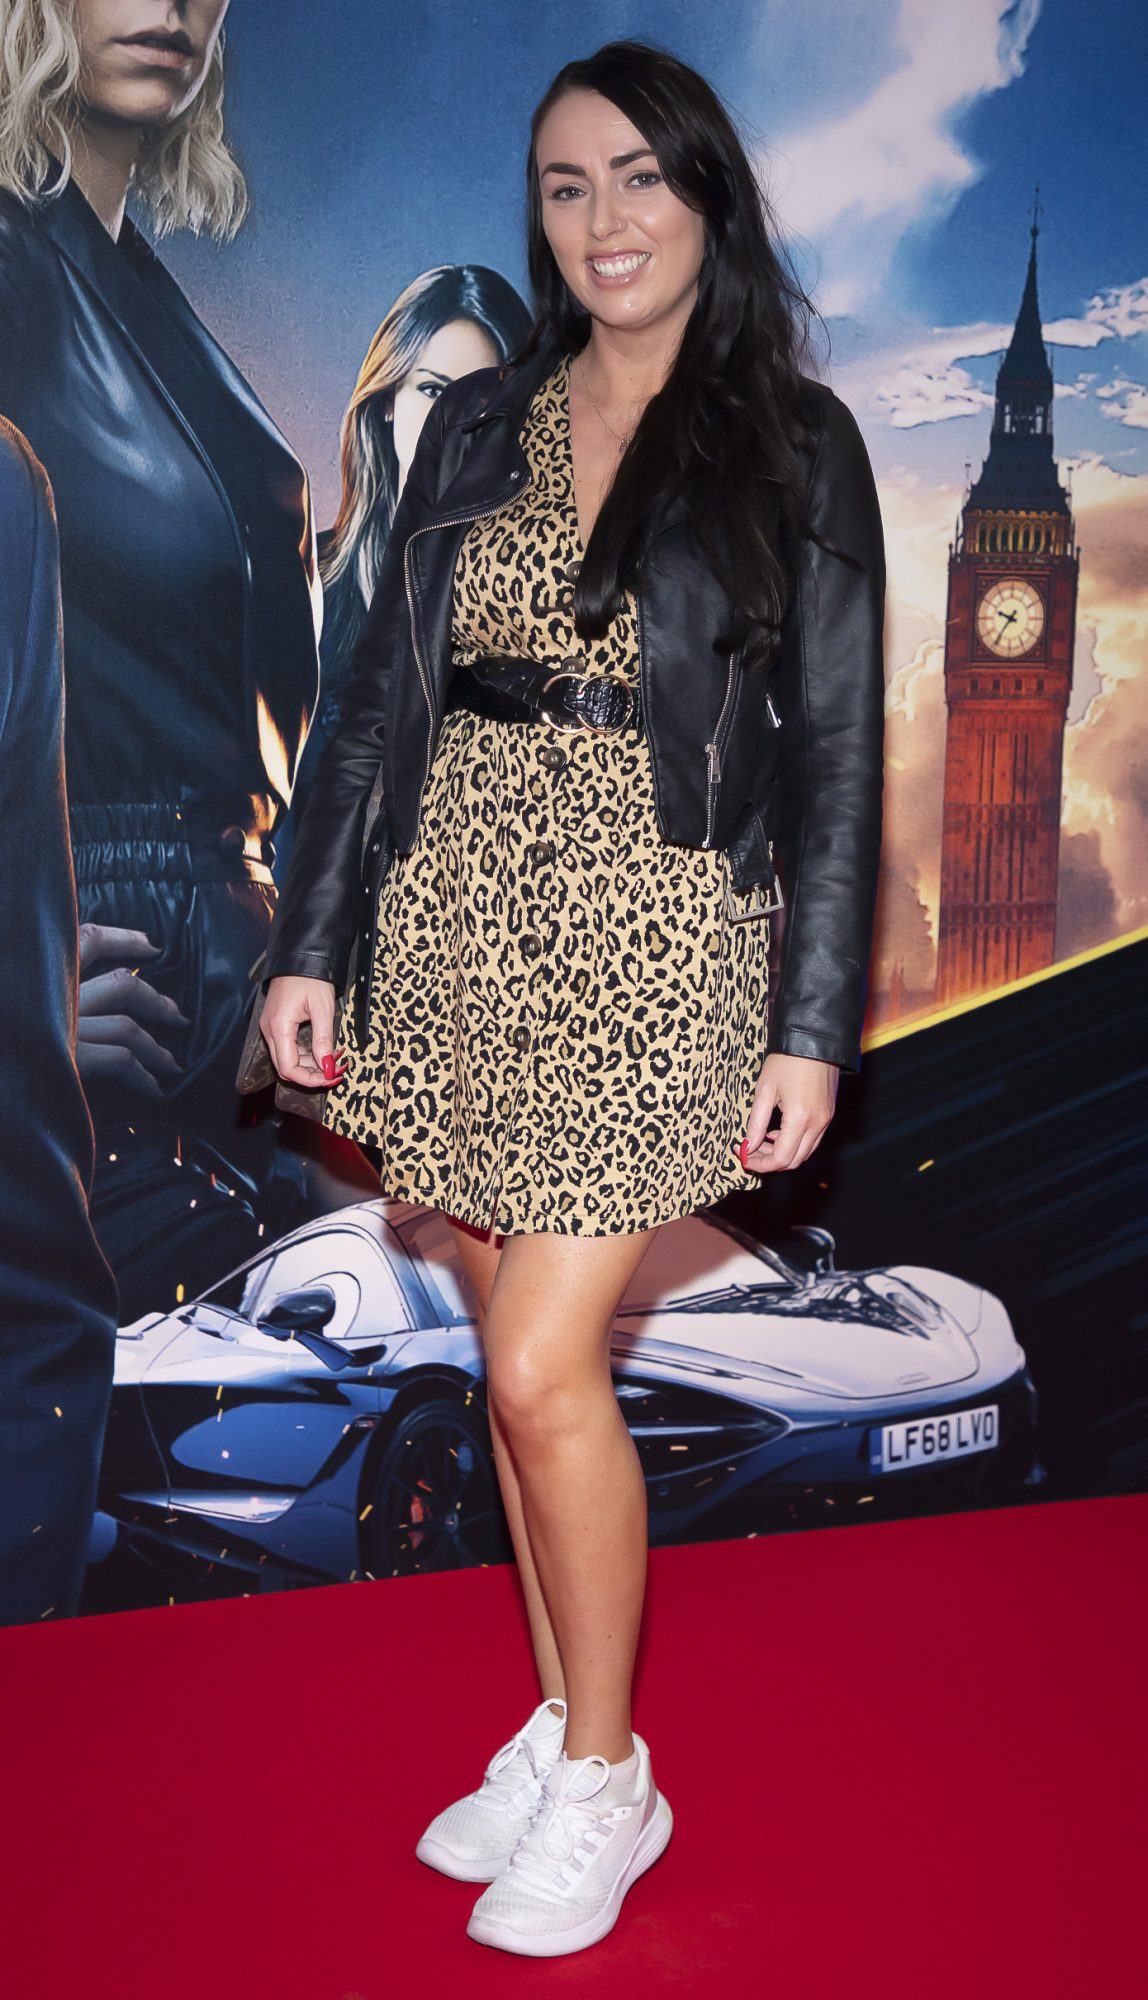 Ellie Sutton pictured at a special preview screening of Fast & Furious Presents: Hobbs & Shaw. Photo: Anthony Woods